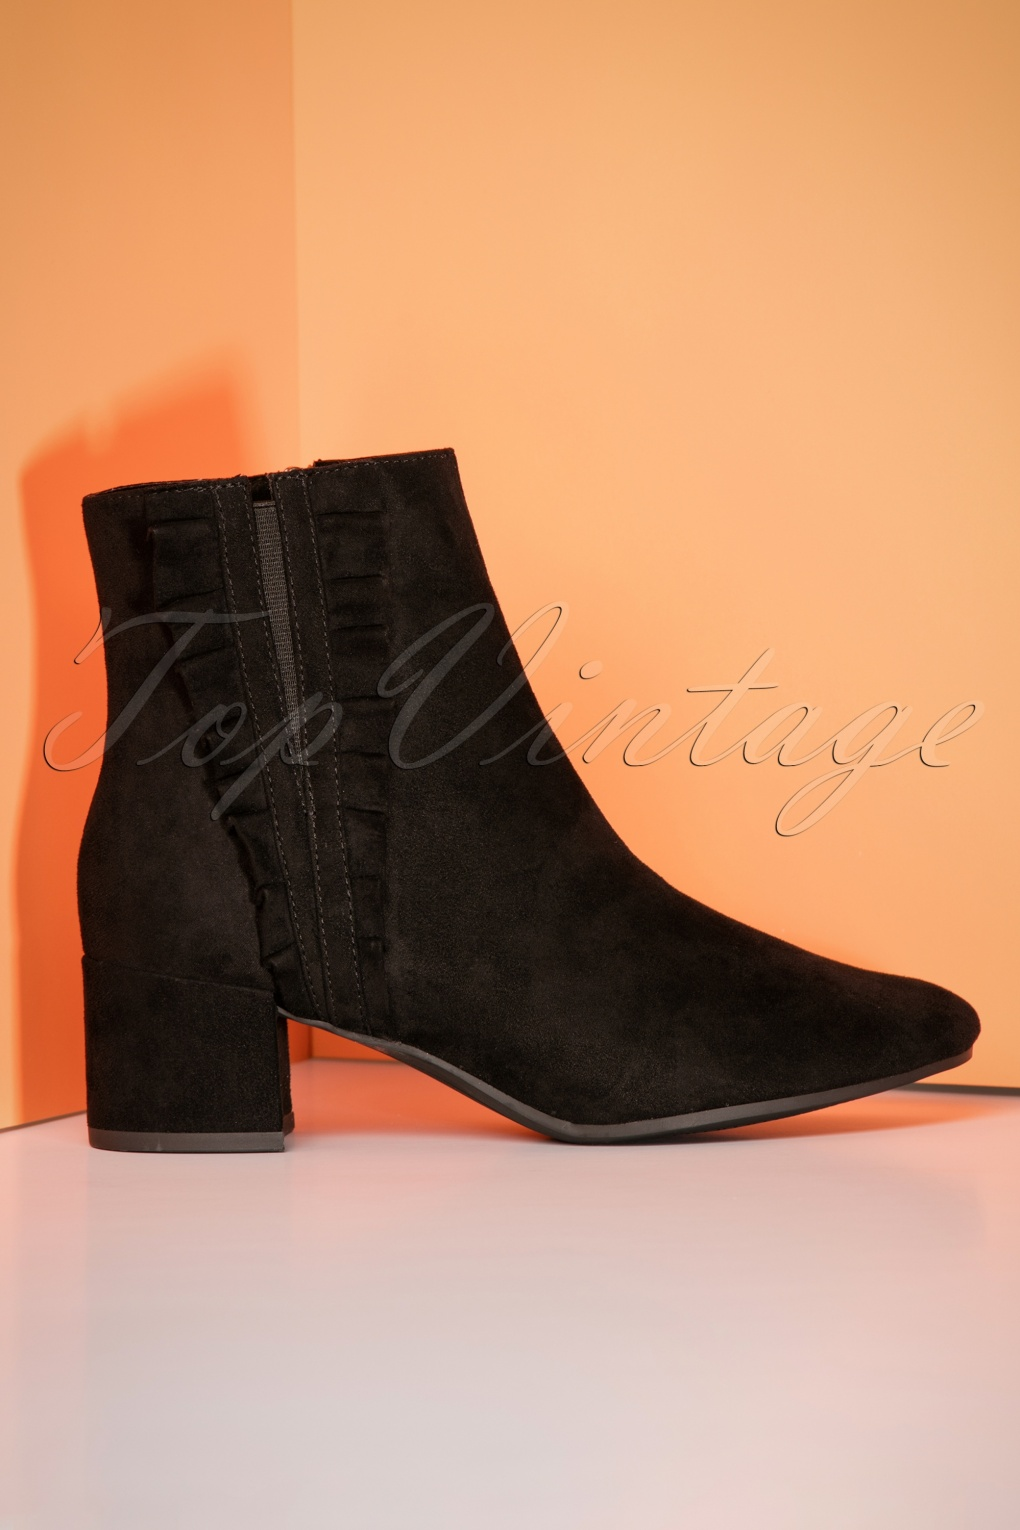 Retro Boots, Granny Boots, 70s Boots 60s Riley Ruffle Ankle Booties in Black £61.25 AT vintagedancer.com